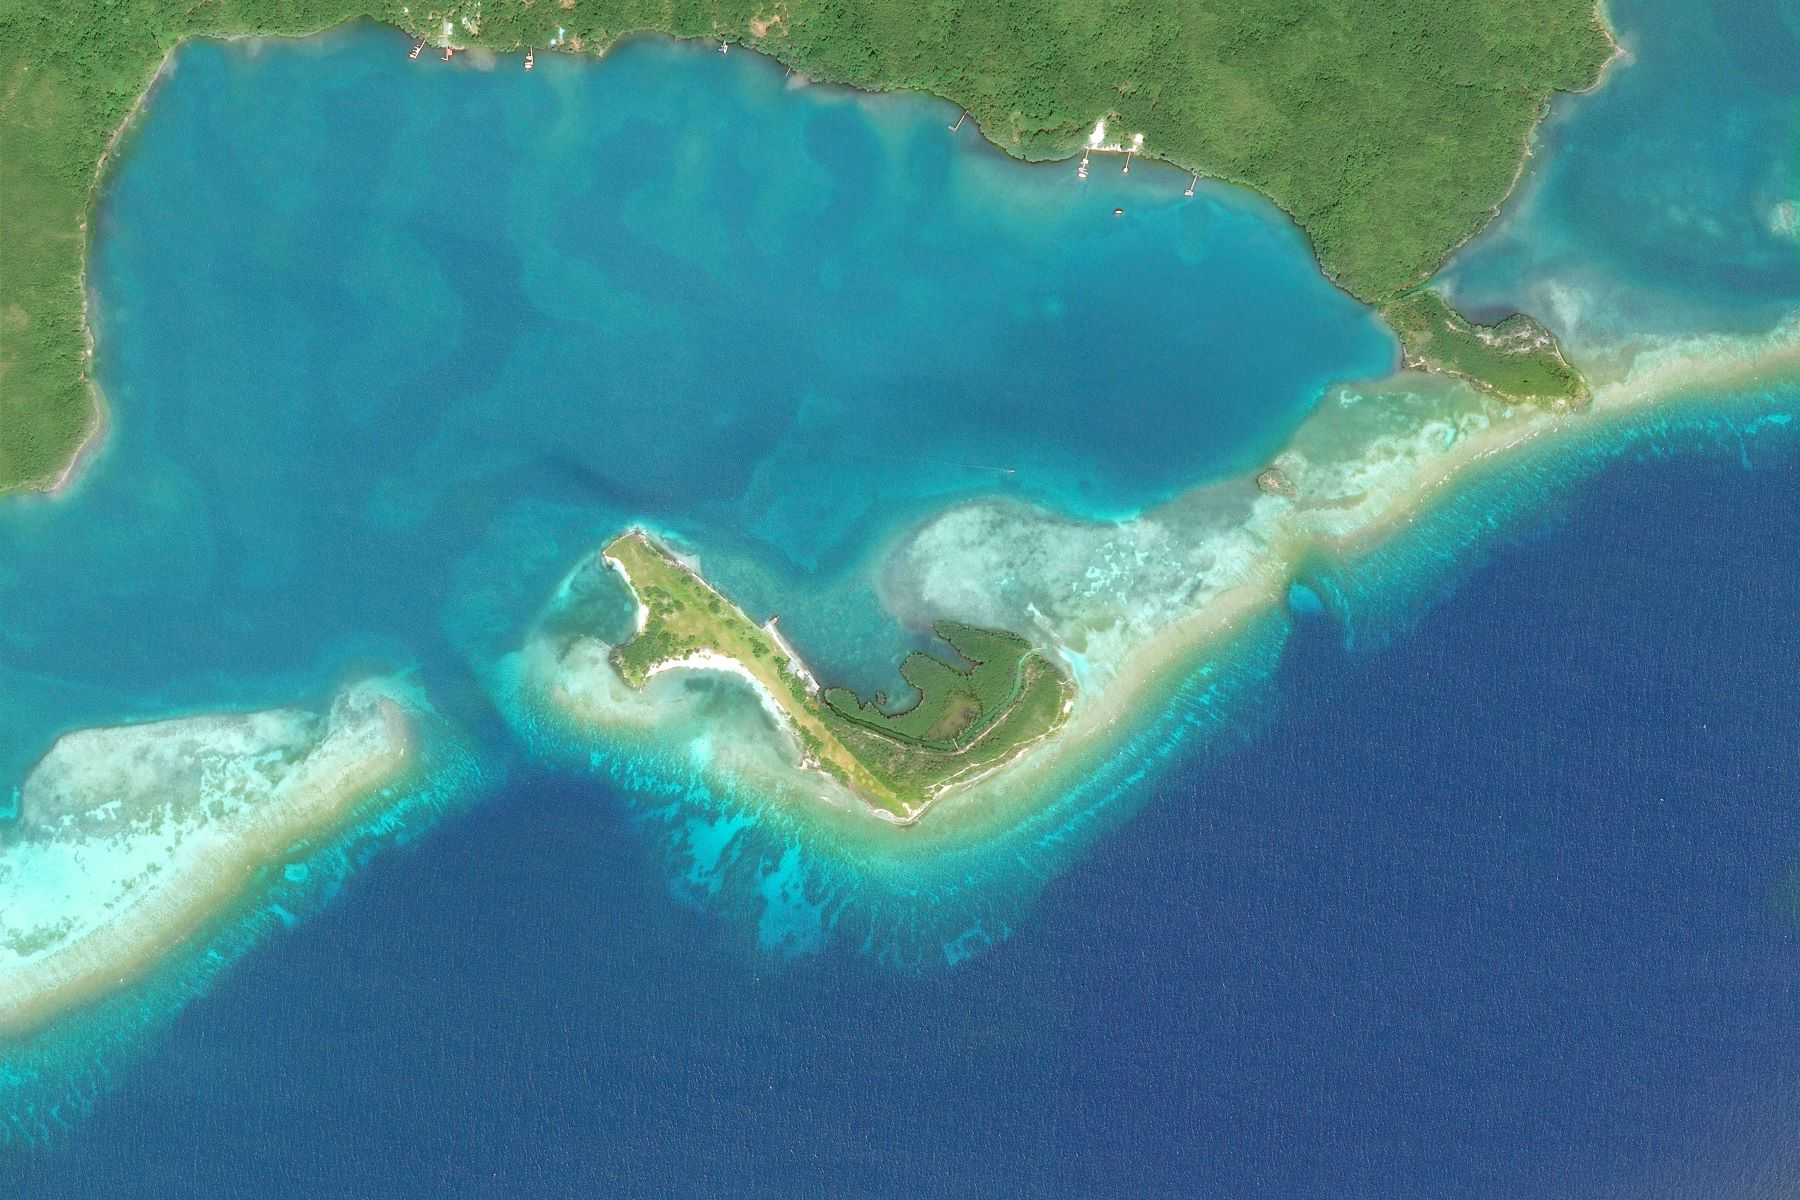 Private Island for Sale at Fort Morgan Cay, a stunning private island Roatan, Bay Islands Honduras